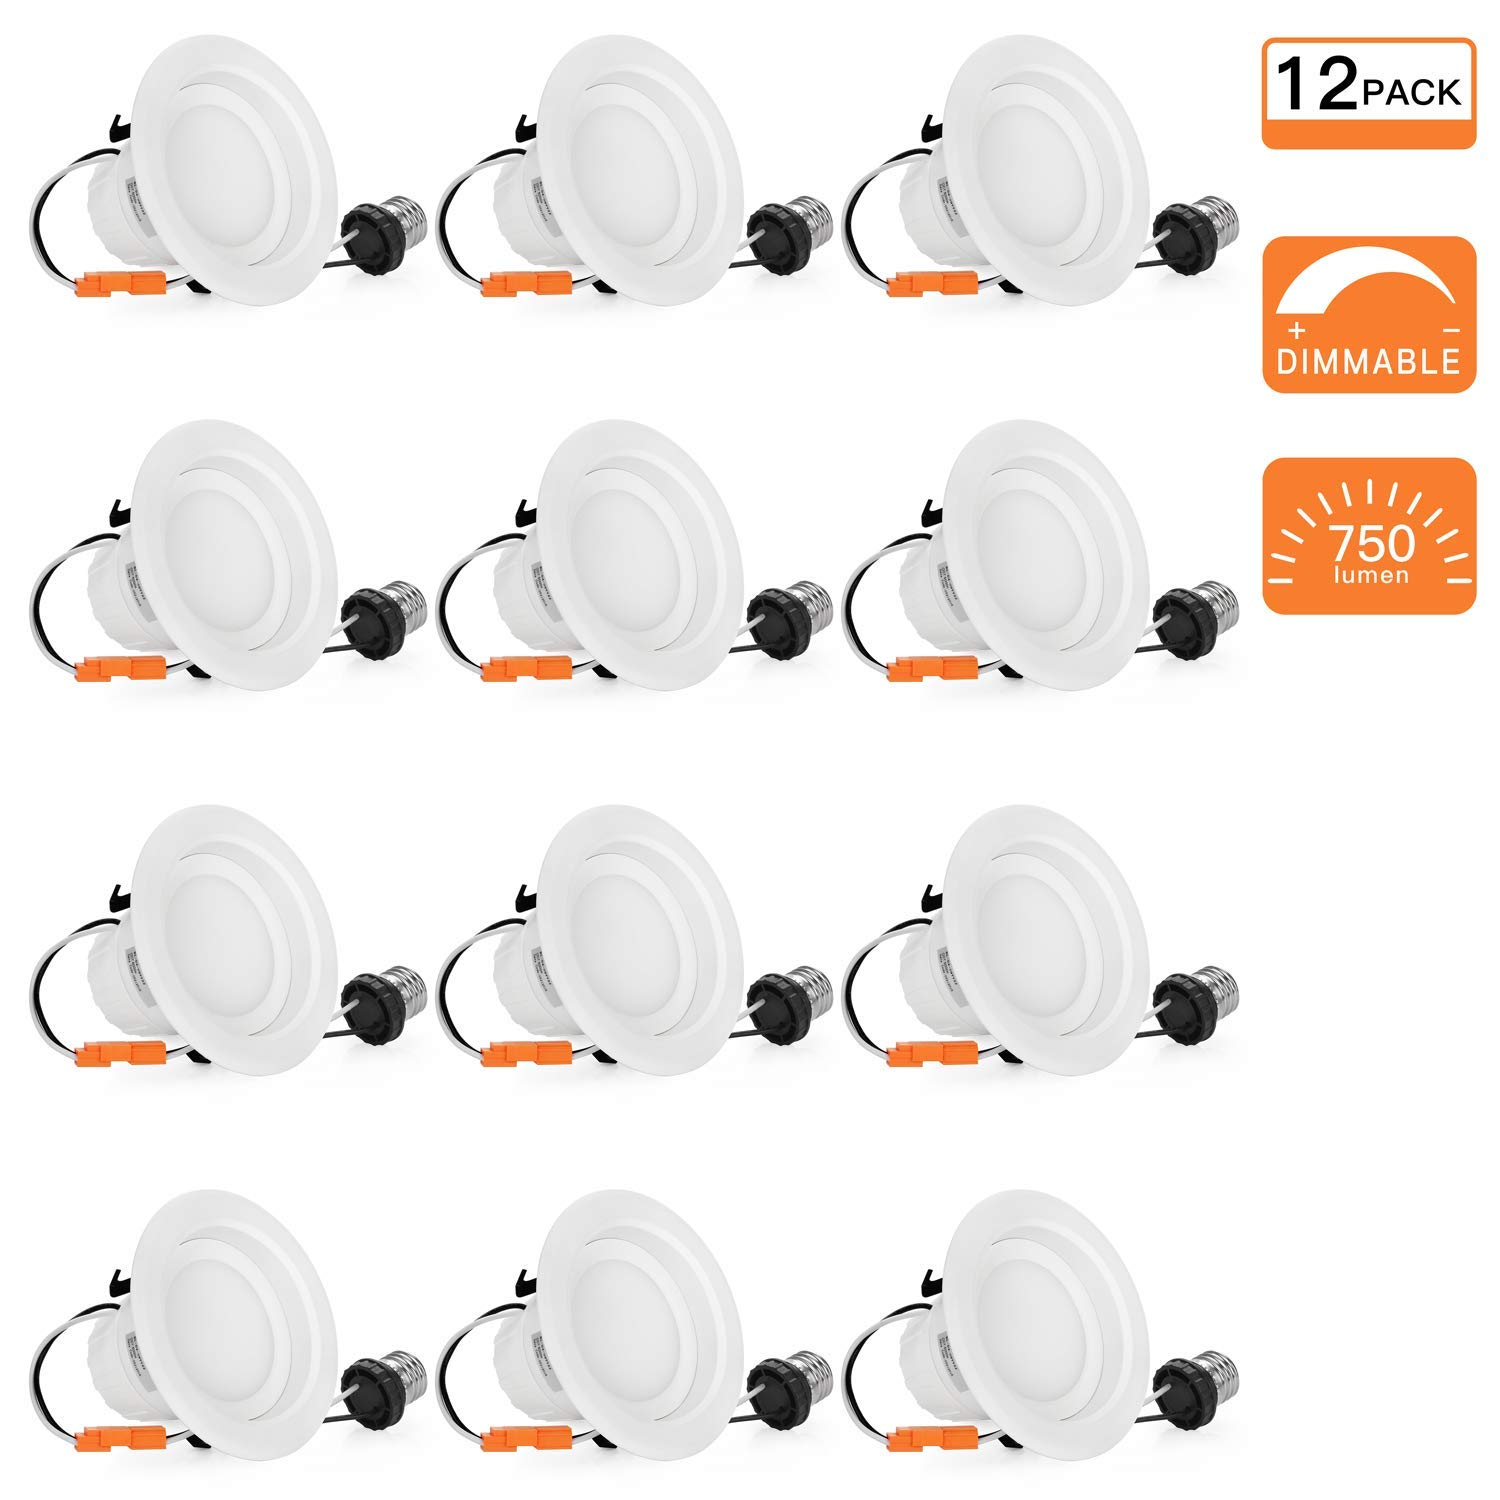 SGL 12-Pack 4 inch Dimmable LED Recessed Lighting, 9W (65W Replacement), 3000K Warm Light, 750Lm, LED Downlight